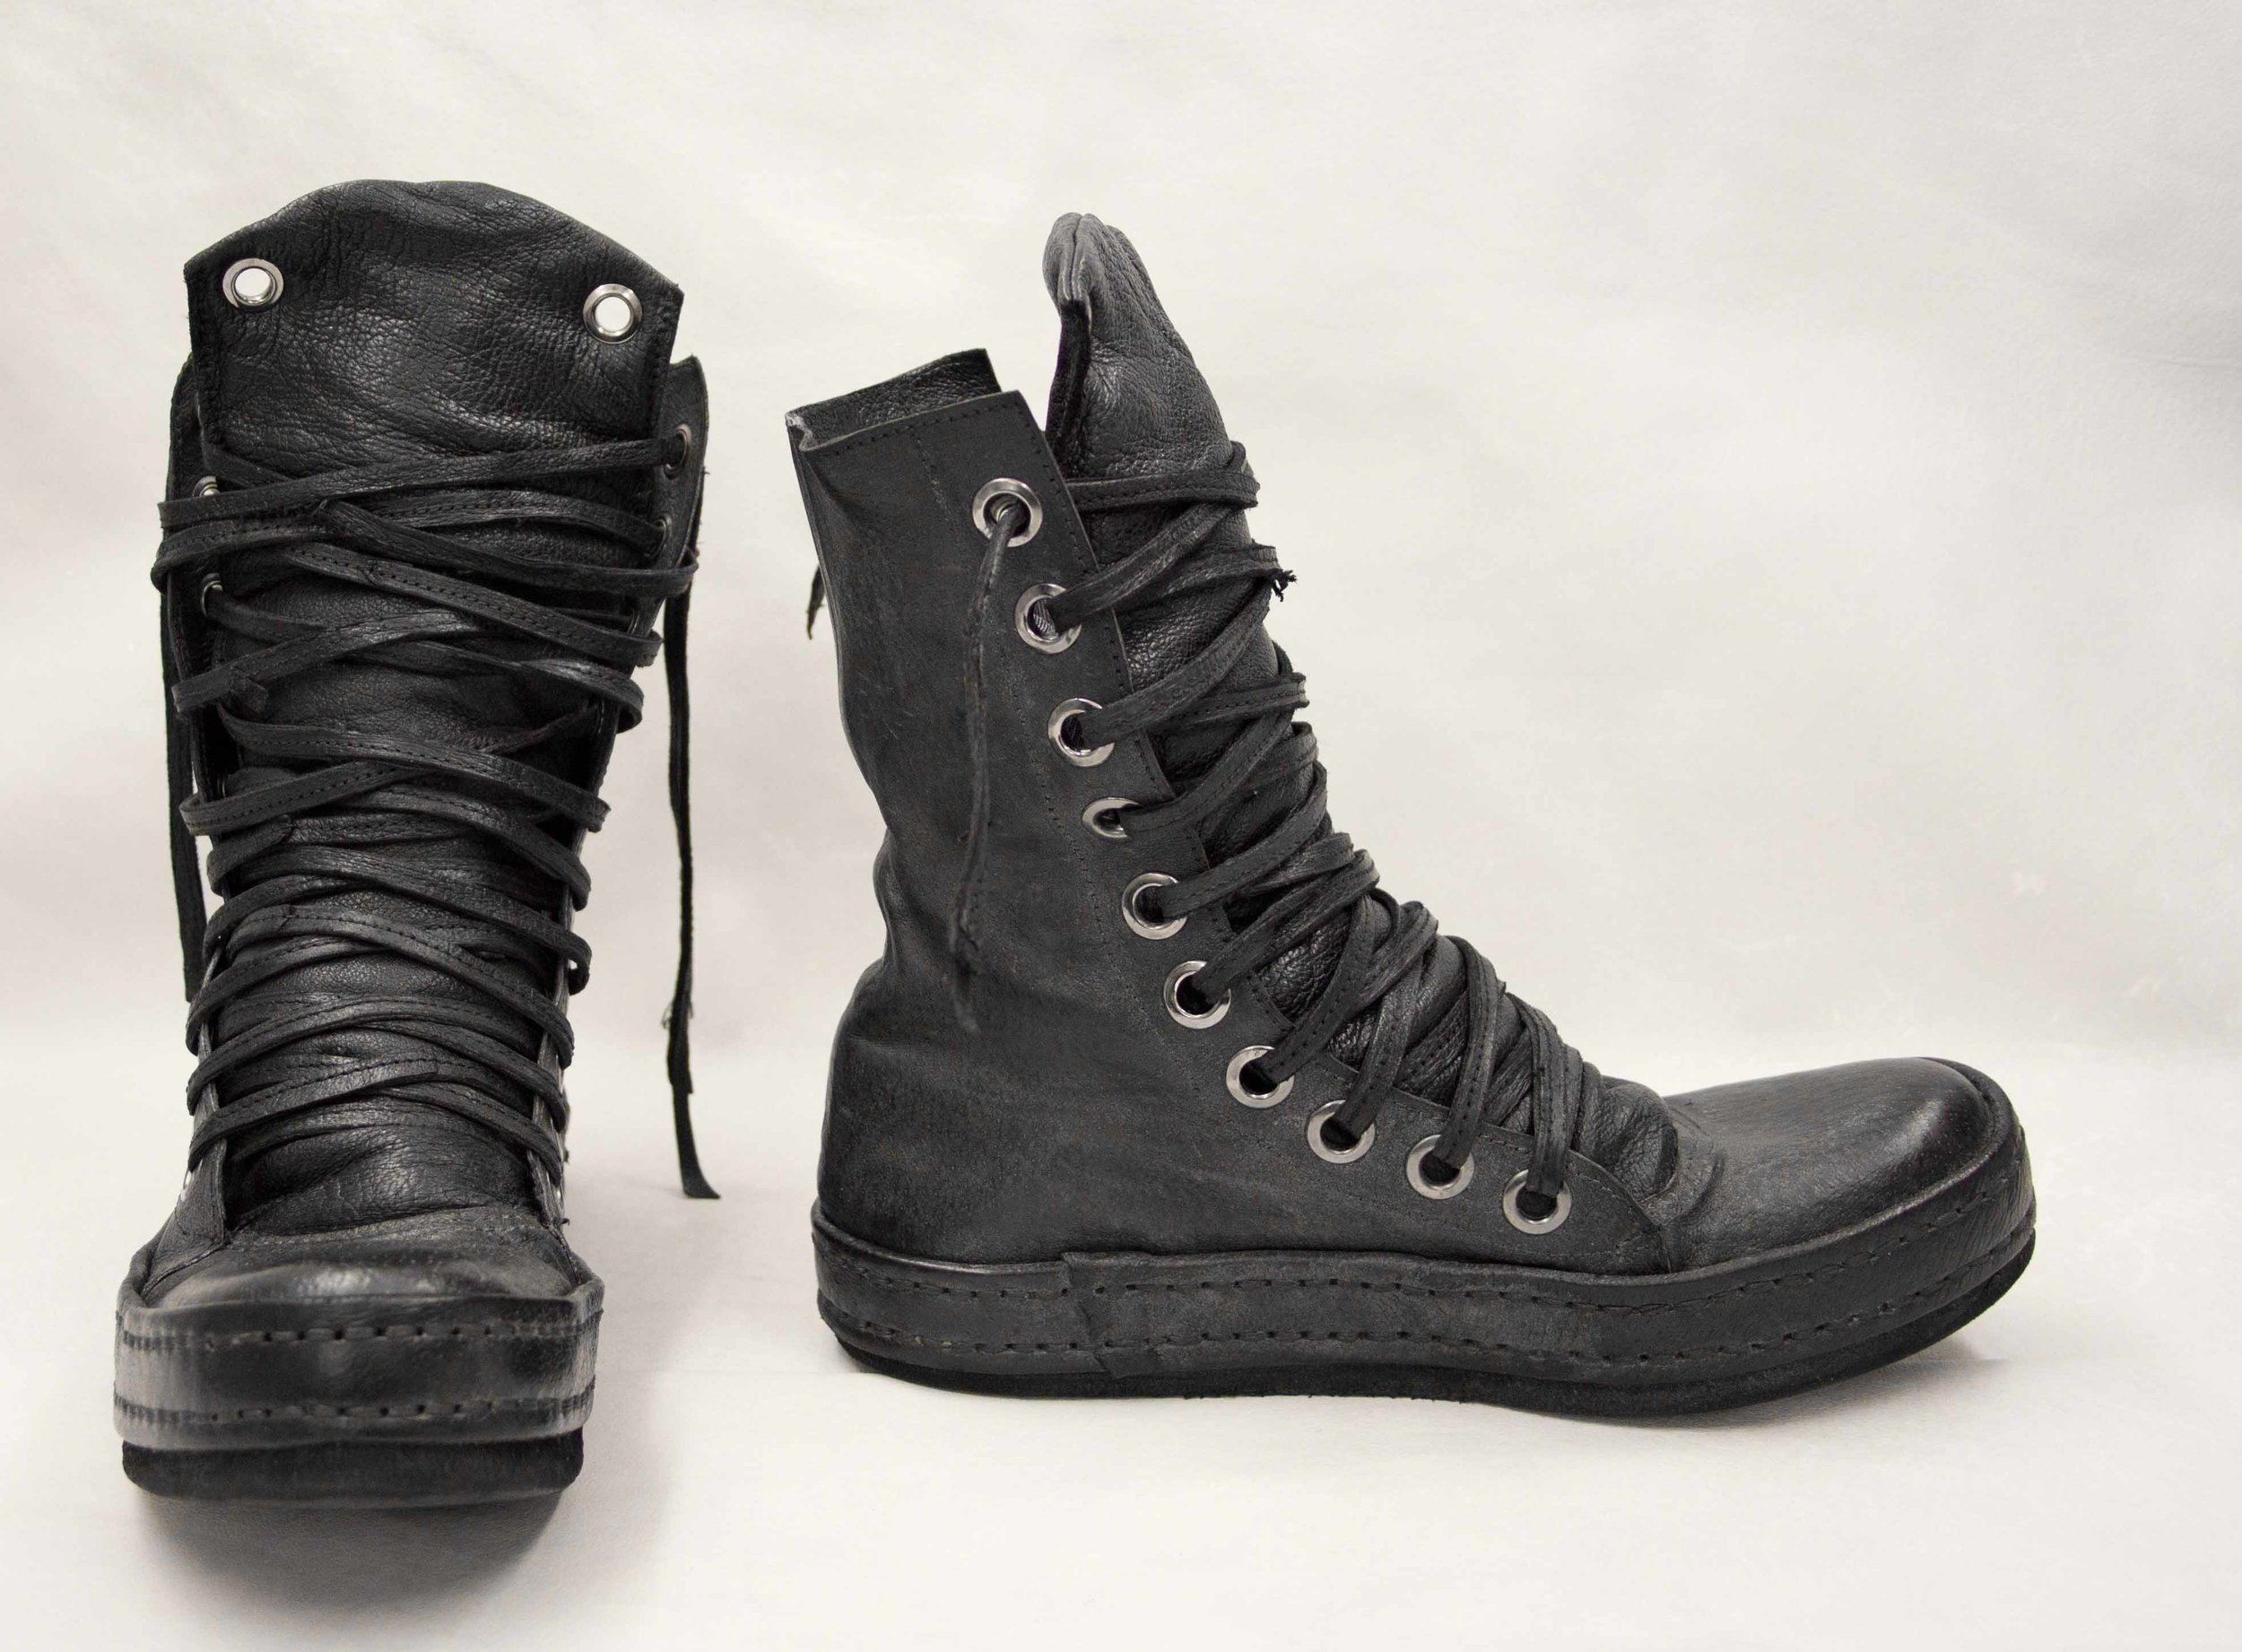 06. Black boots back and side.jpg